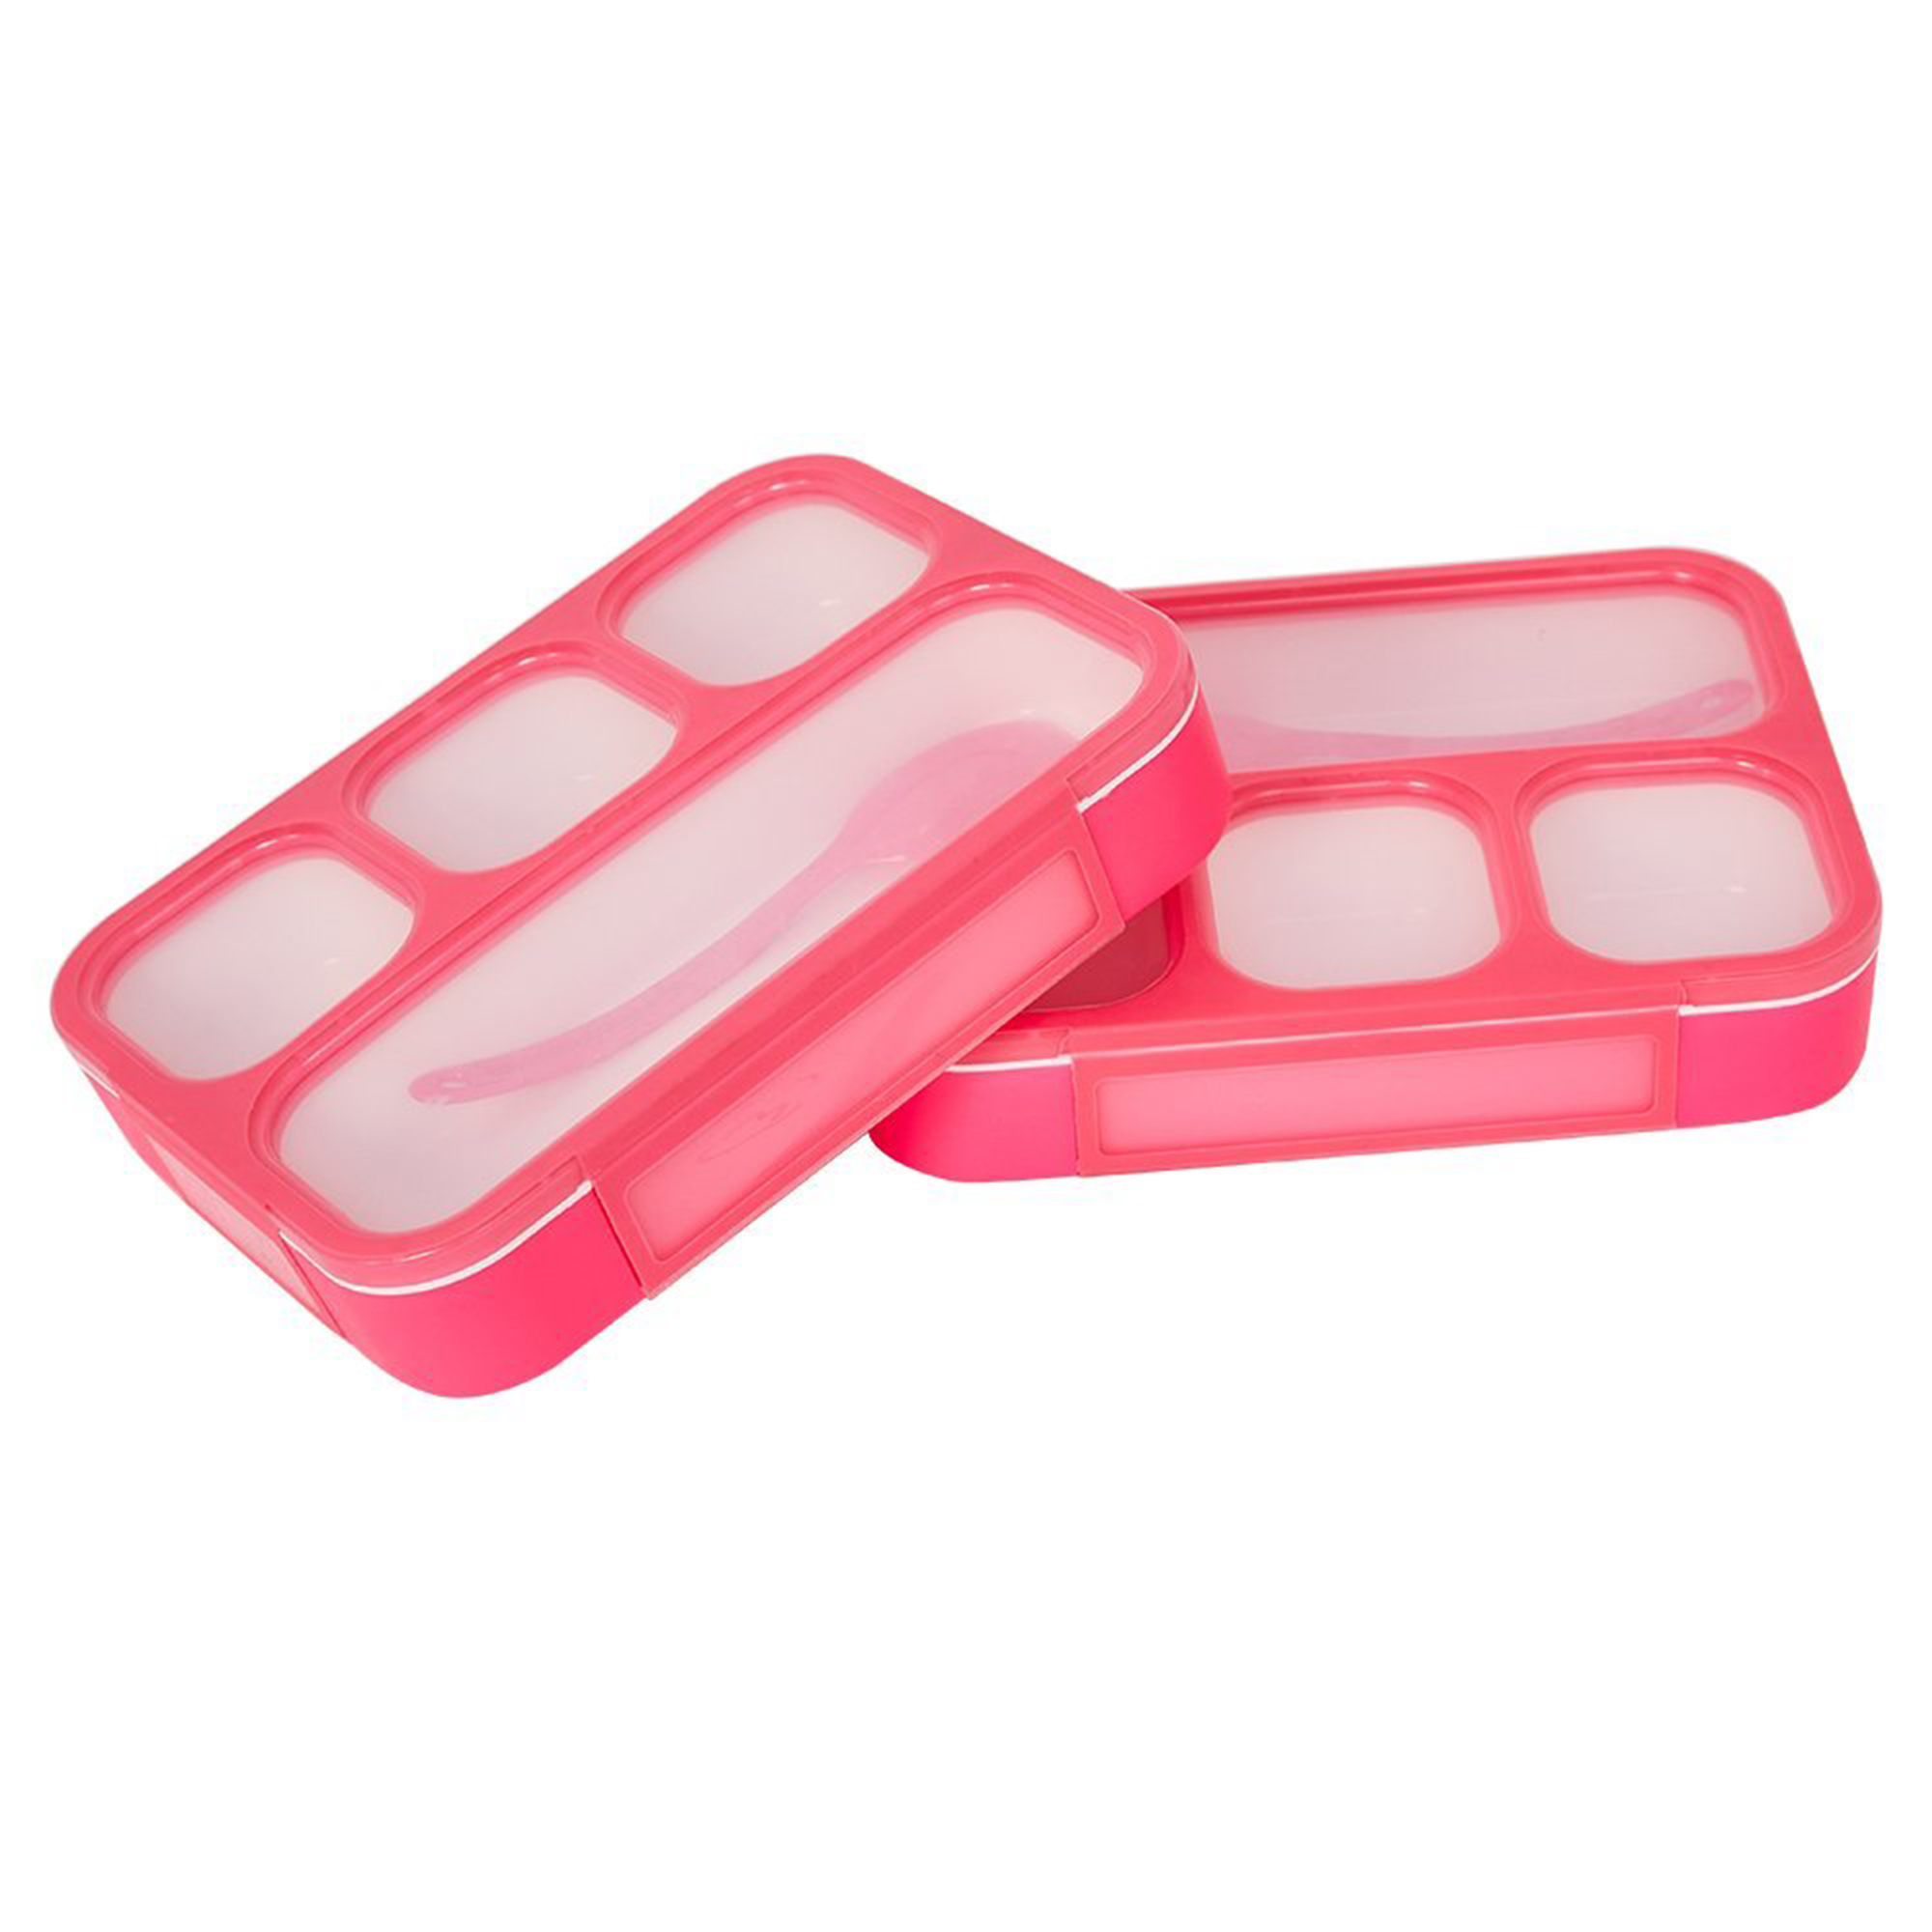 Karmas Product 2 Pack Portable Bento Lunch Box Plastic Food Storage Containers with 4 Compartments Premium Lunch Boxes with Spoon,Ideal for Kids&Adults,Boys and Girls,BPA Free,Red and Blue Colour